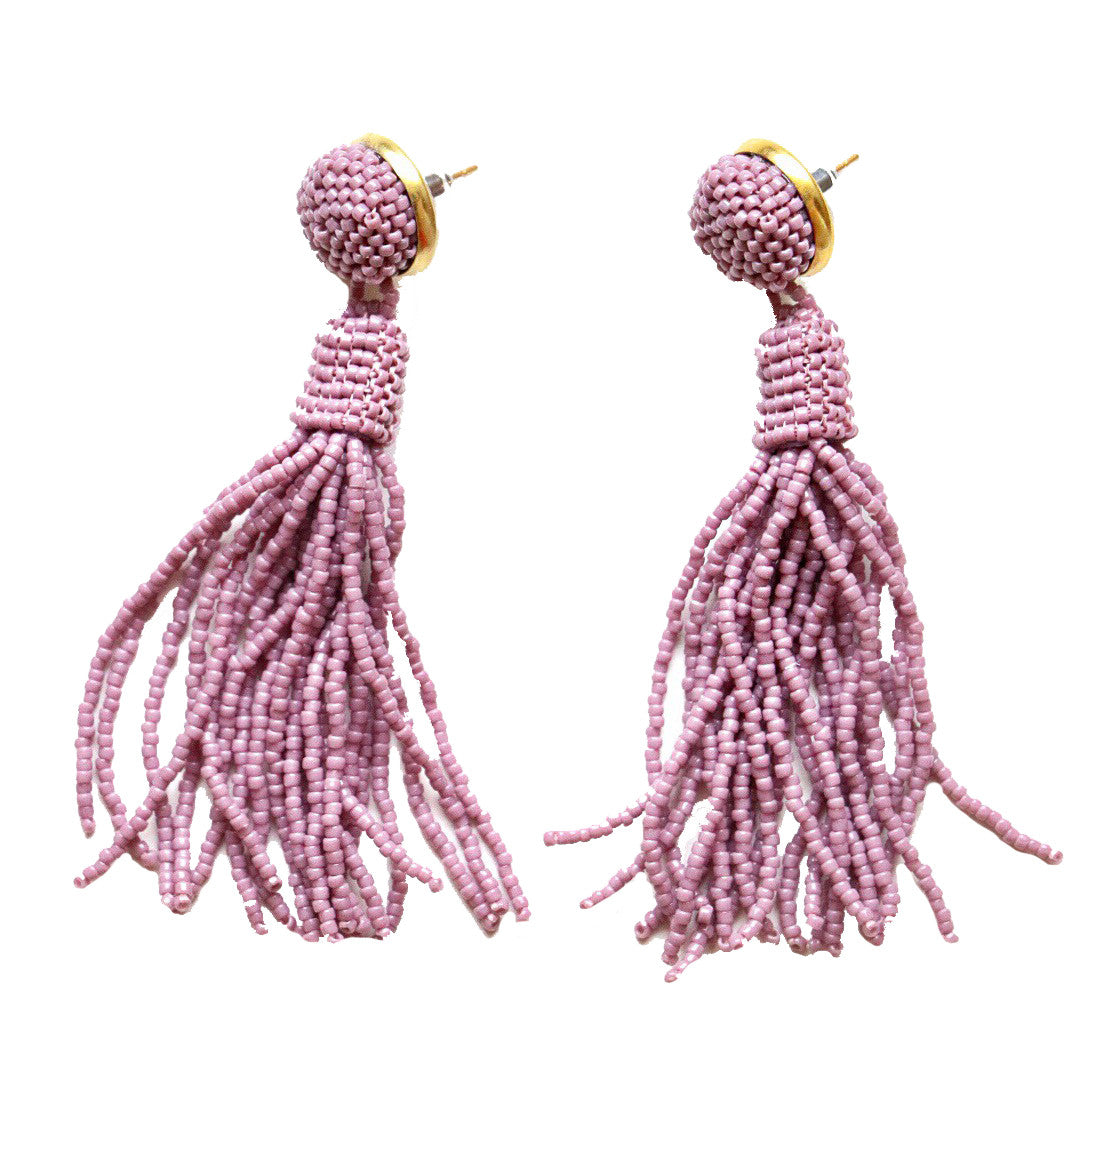 Pink Tassel Earrings, Molly Jane Designs, Spring earrings, Earrings to wear to prom, jewelry for mothers day, spring accessories, southern designer